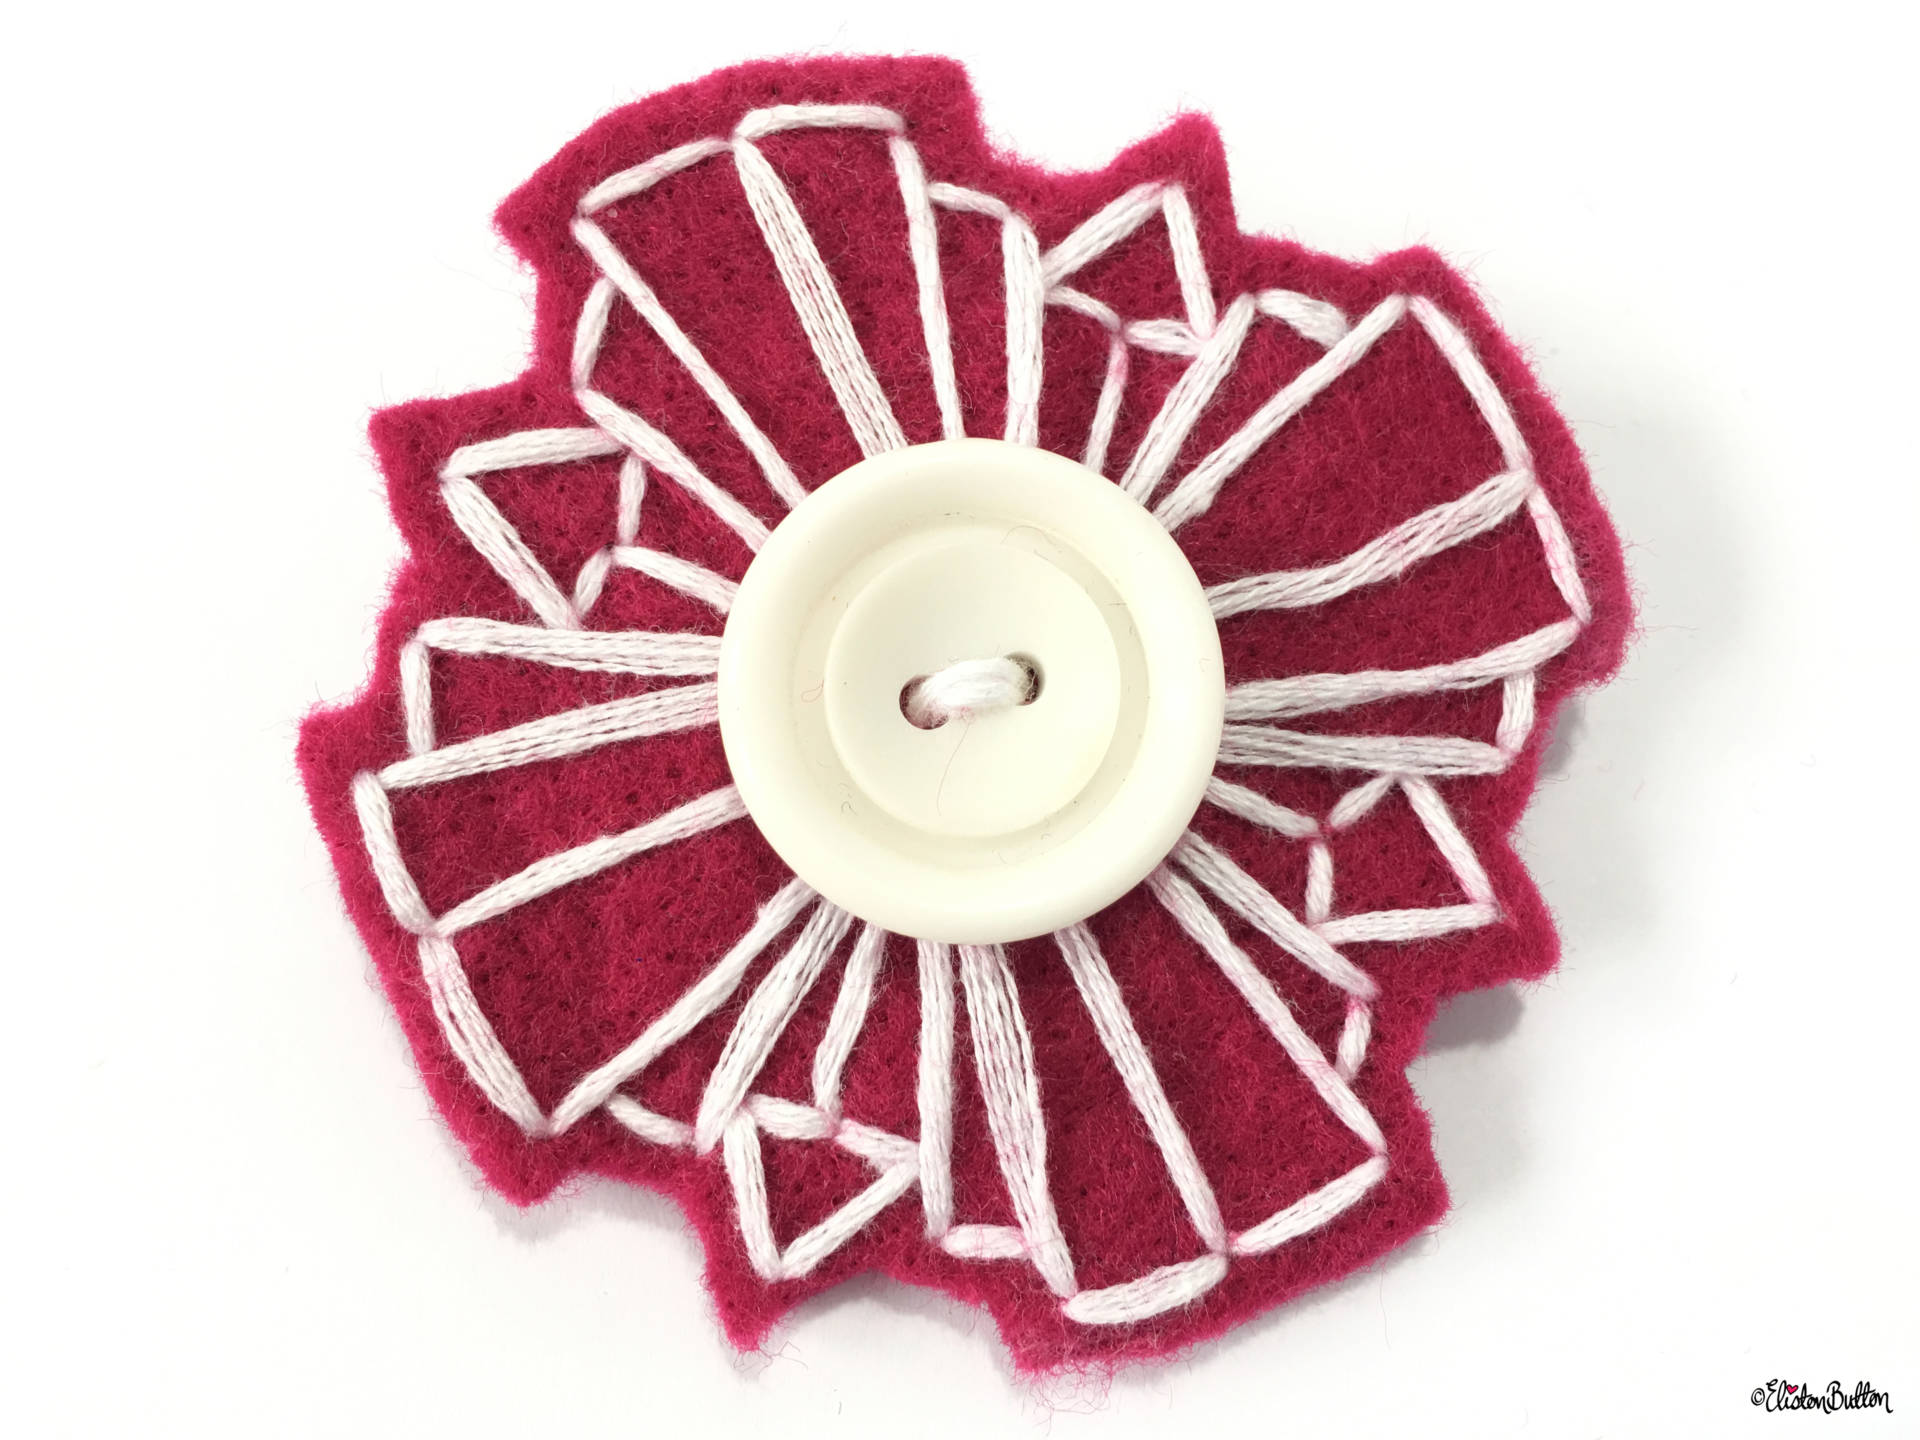 Raspberry Pink and White, Art Deco Inspried Embroidered Felt Lapel Pin - Create 30 - No. 5, 6, & 7 - Embroidered Felt Lapel Pins at www.elistonbutton.com - Eliston Button - That Crafty Kid – Art, Design, Craft & Adventure.